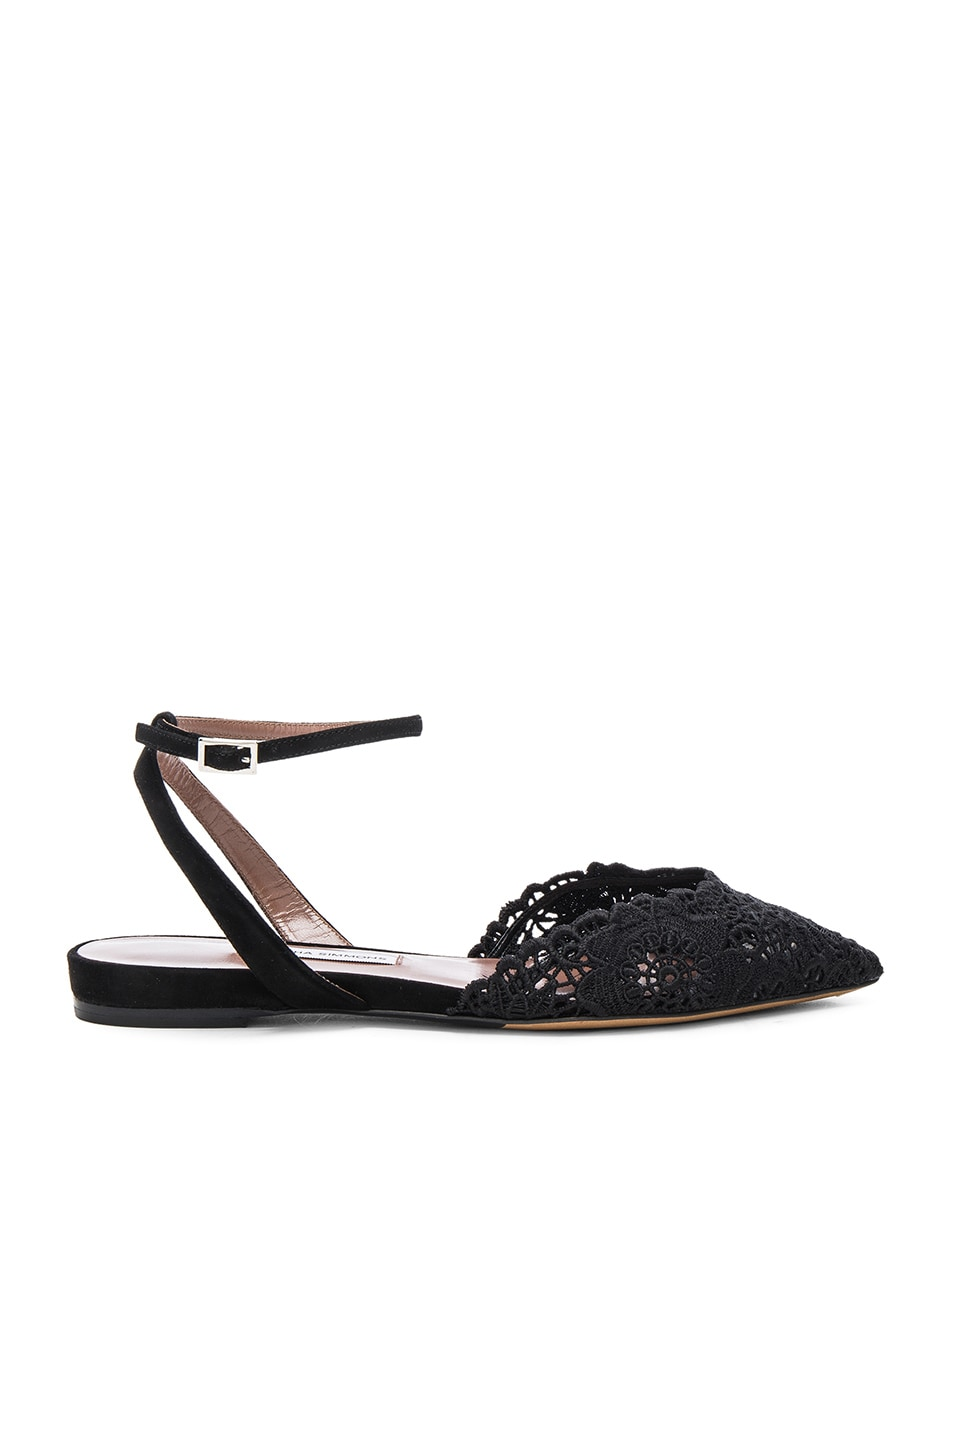 Image 1 of Tabitha Simmons Vera Crochet Flats in Black Crochet & Suede